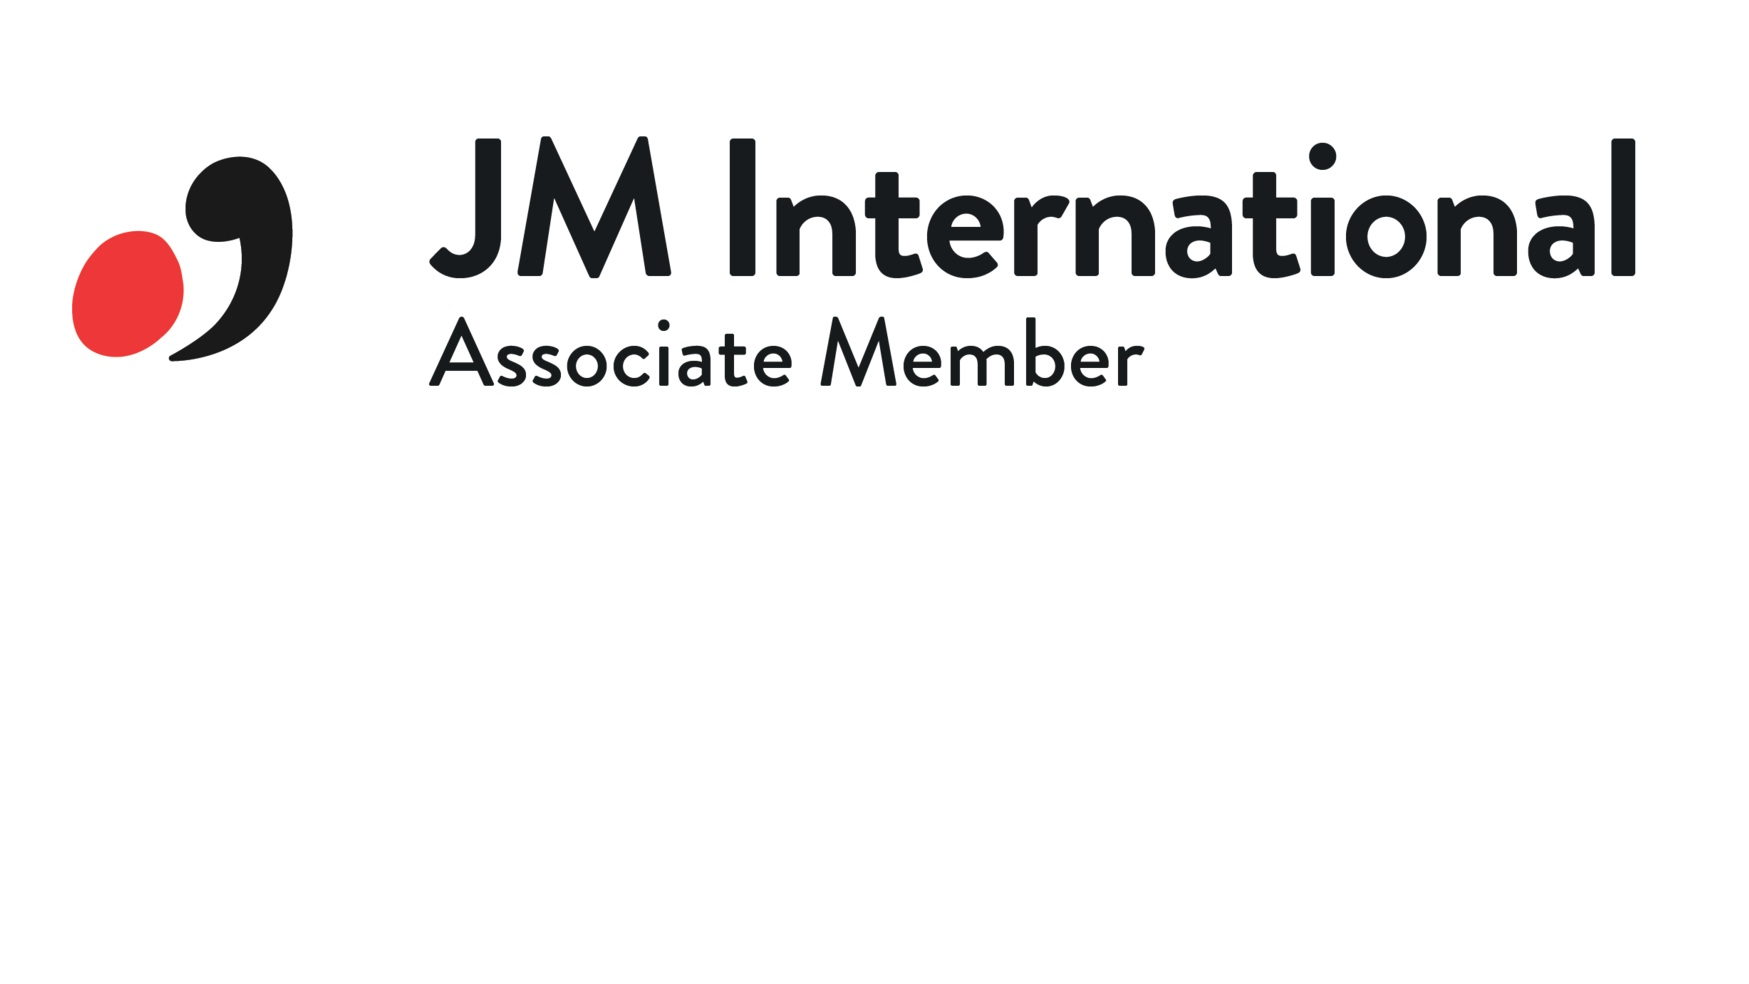 JMI_logo-associate_BGsolid.jpg